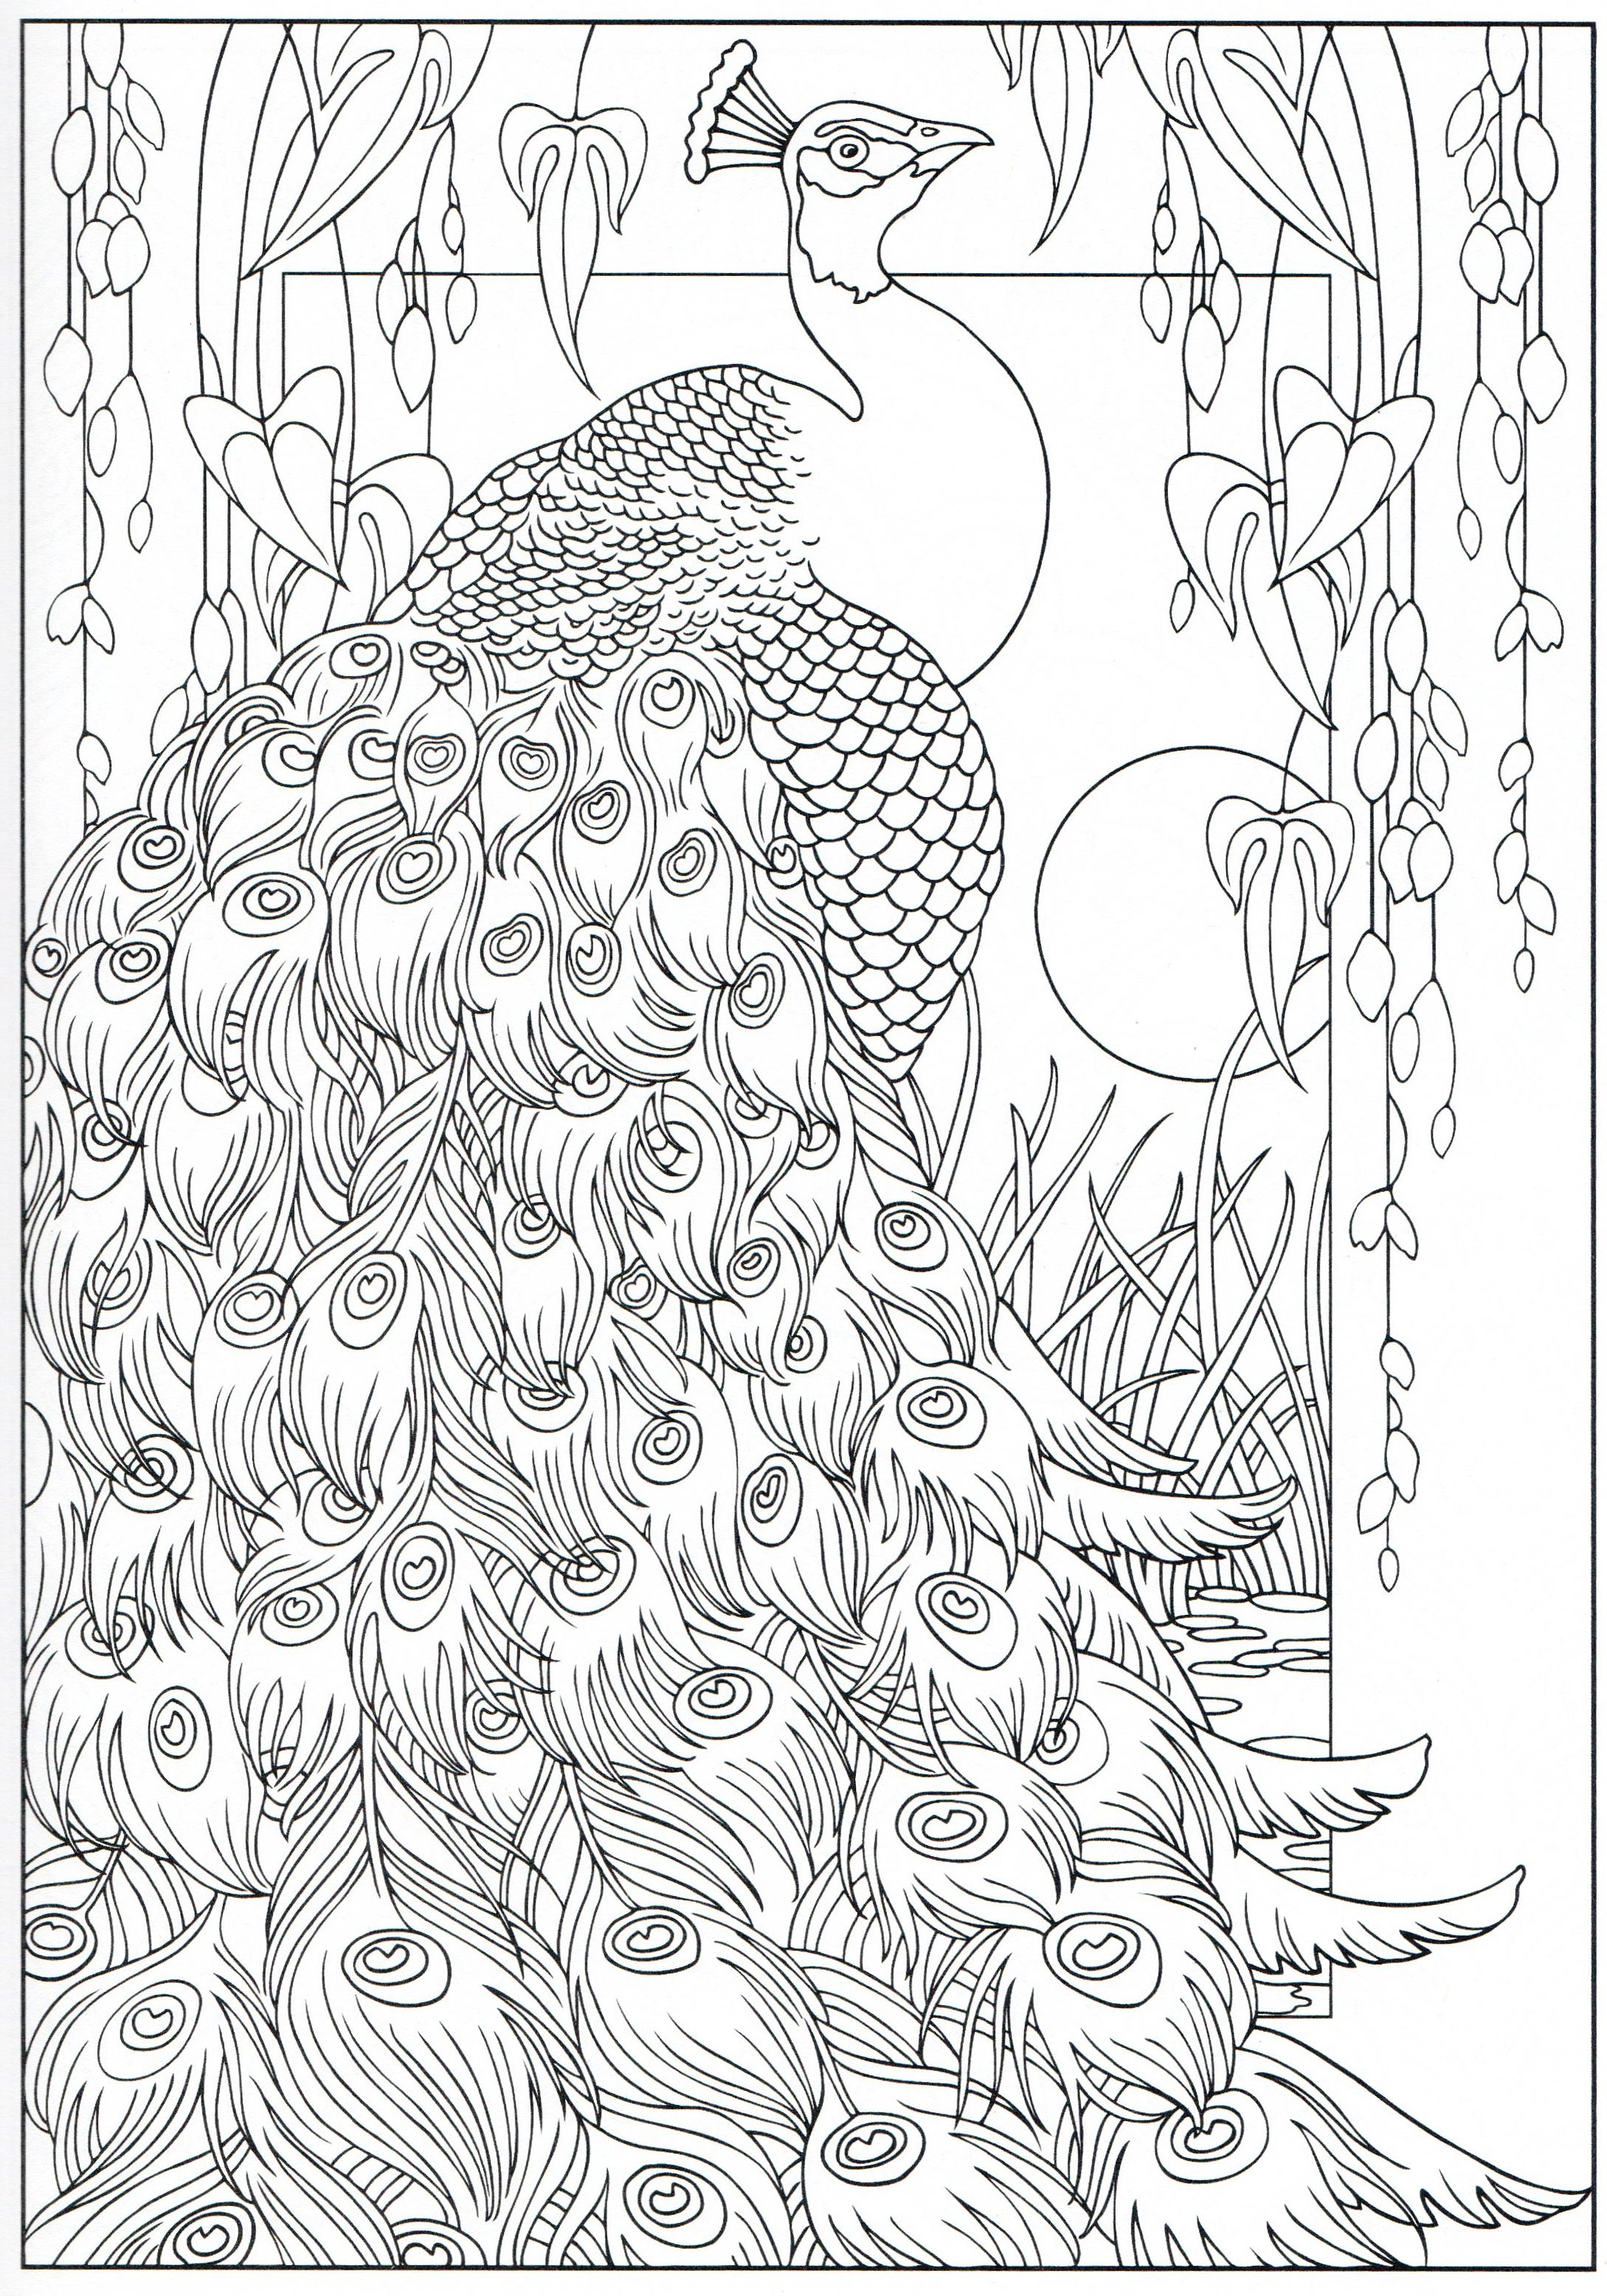 Peacock coloring page 1631 Color